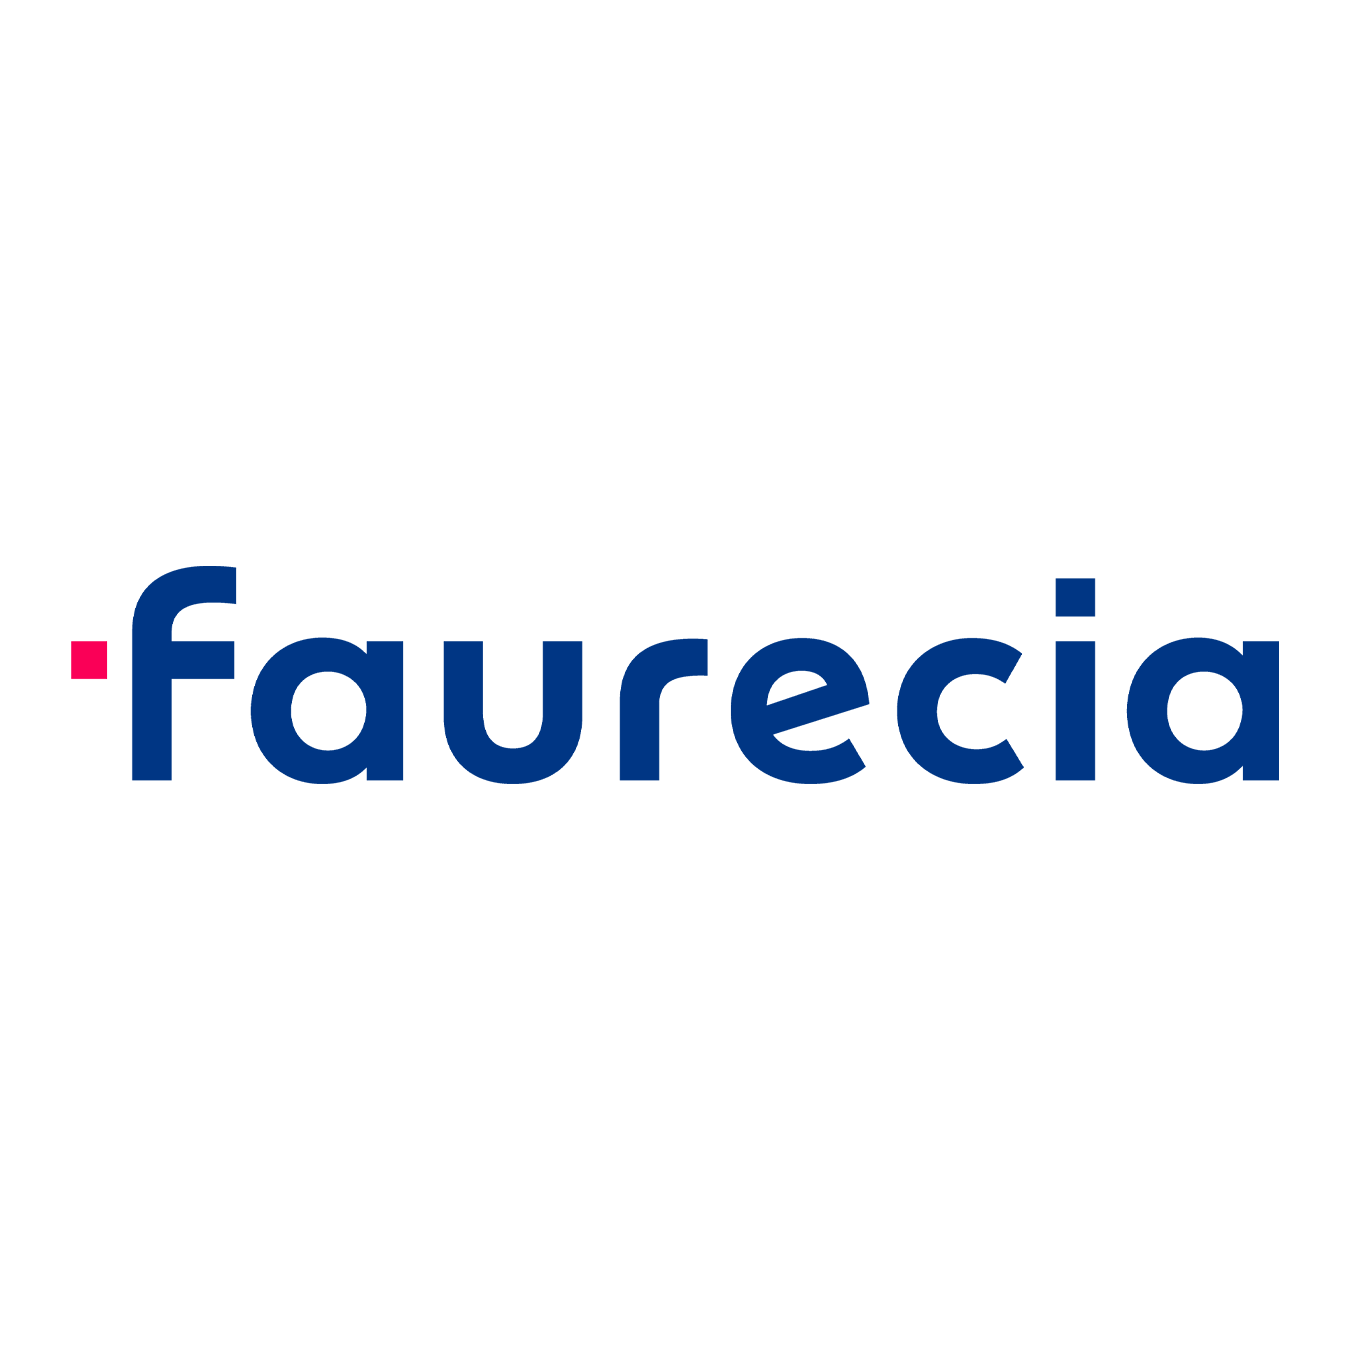 faurecia white.png